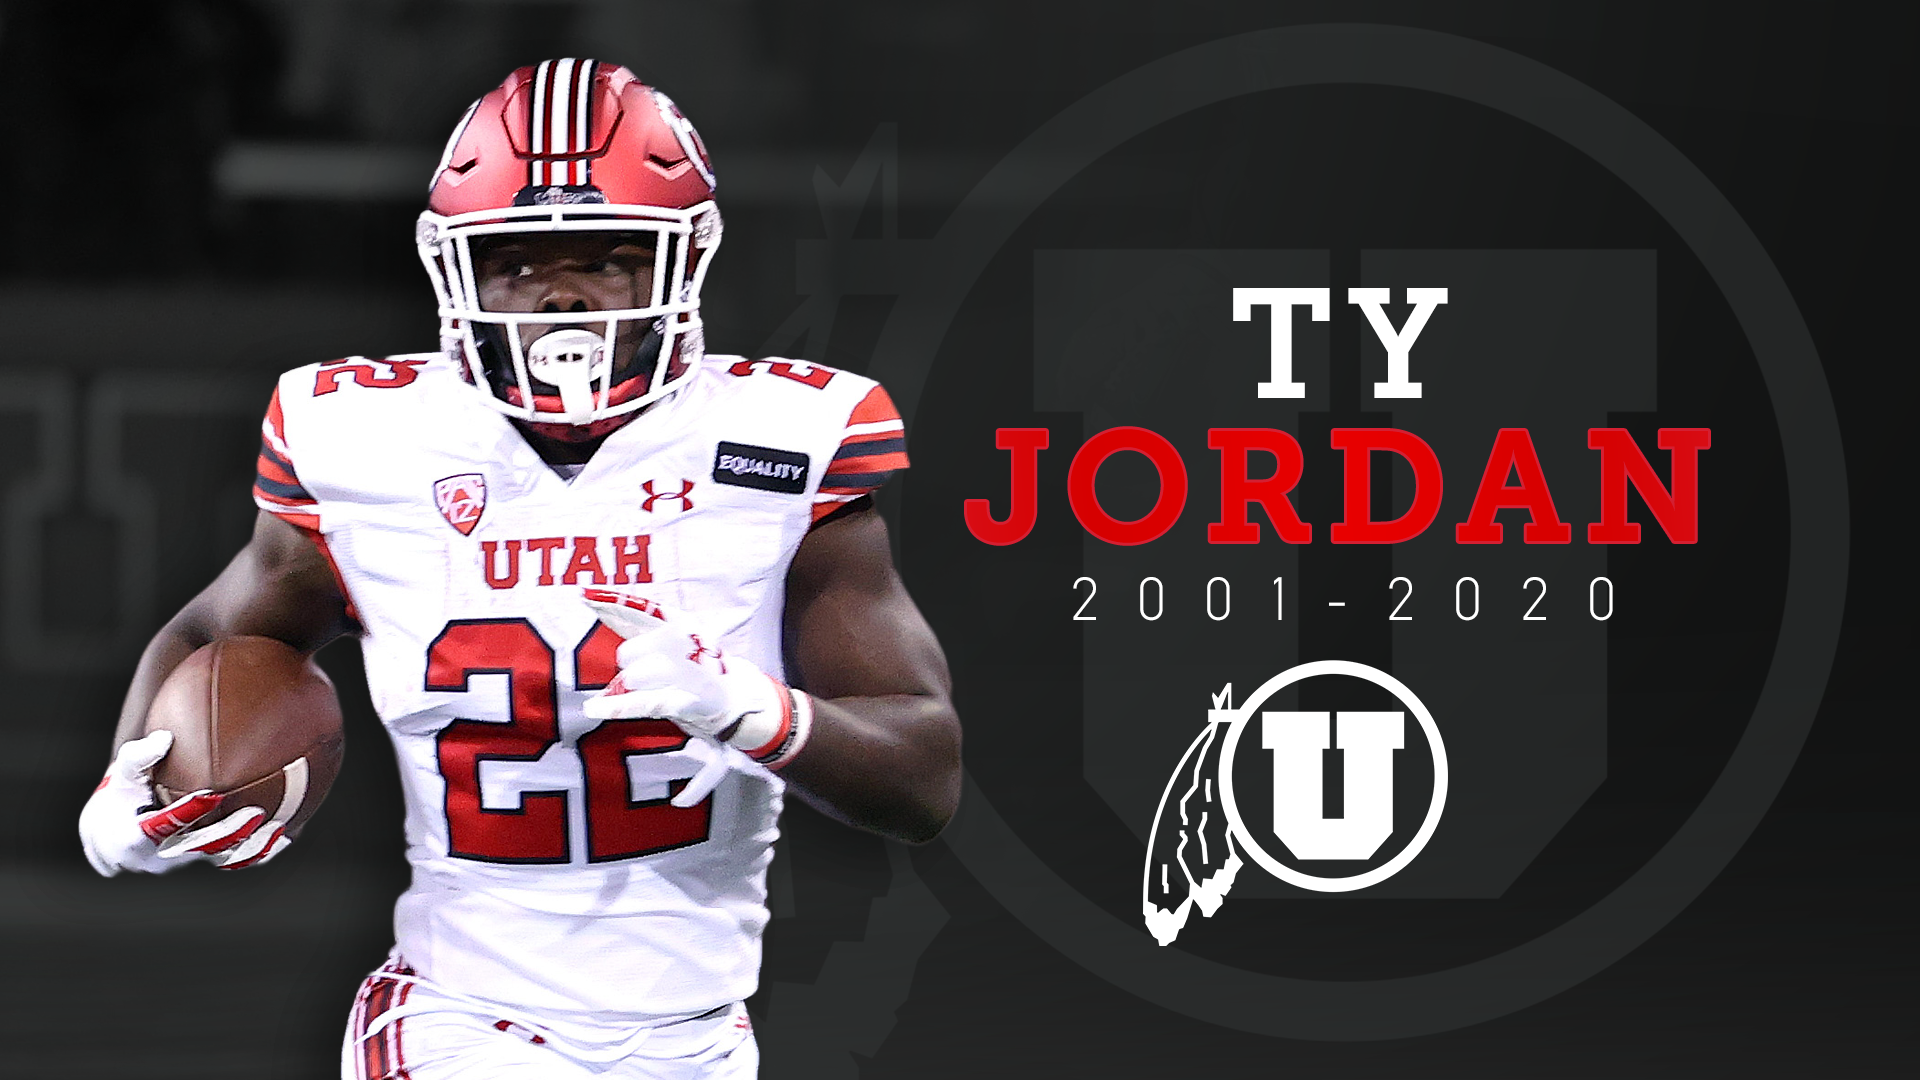 Jordan, 19, a star freshman running back for the Utes, died at a Dallas-area hospital after accidently shooting himself on Christmas day. (Photo: KUTV)